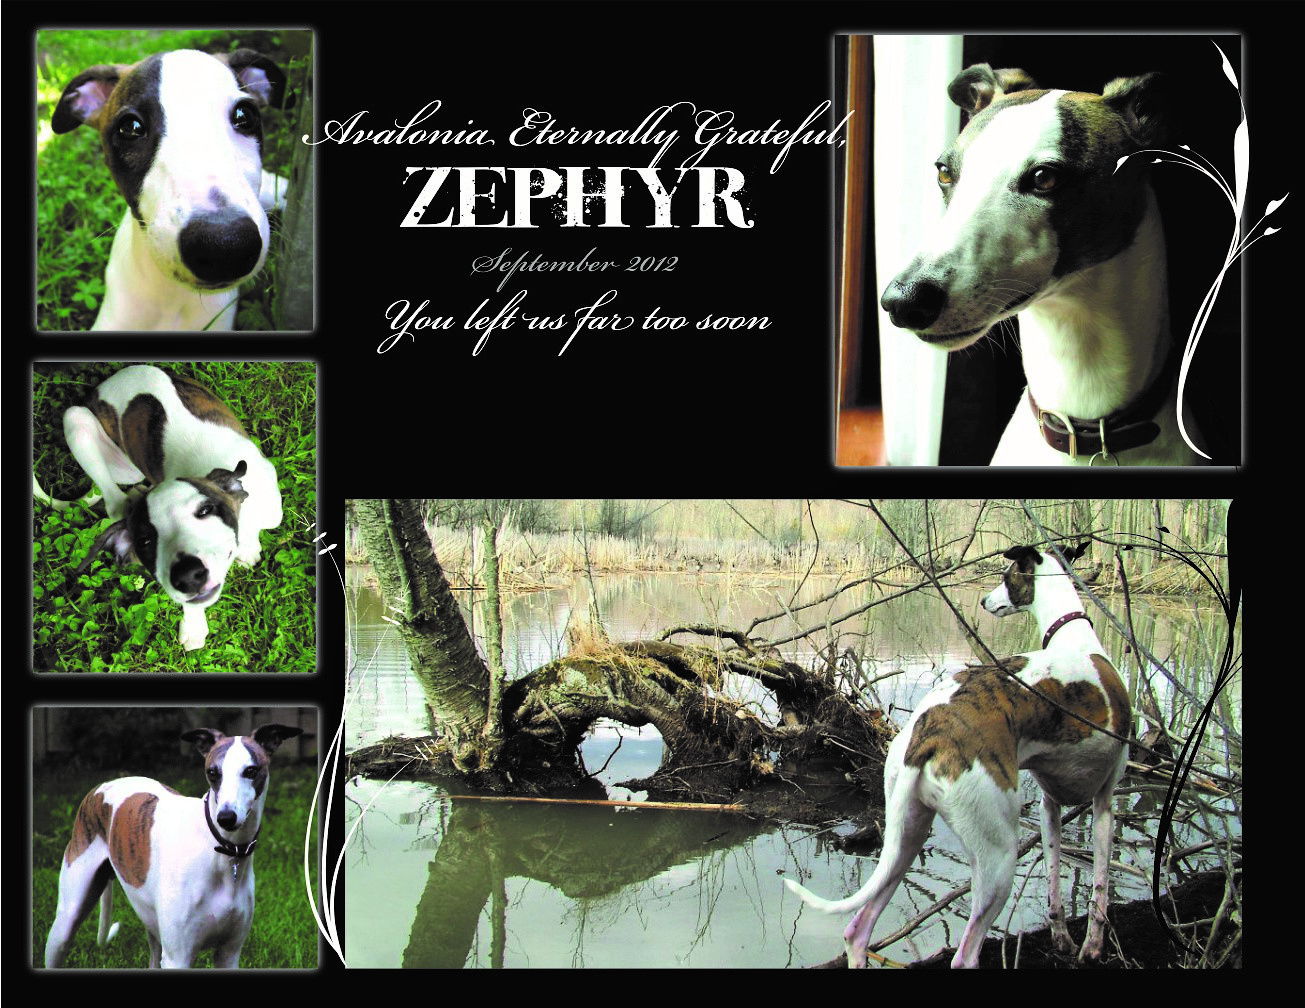 Tribute to Zeph by Bob Chafe